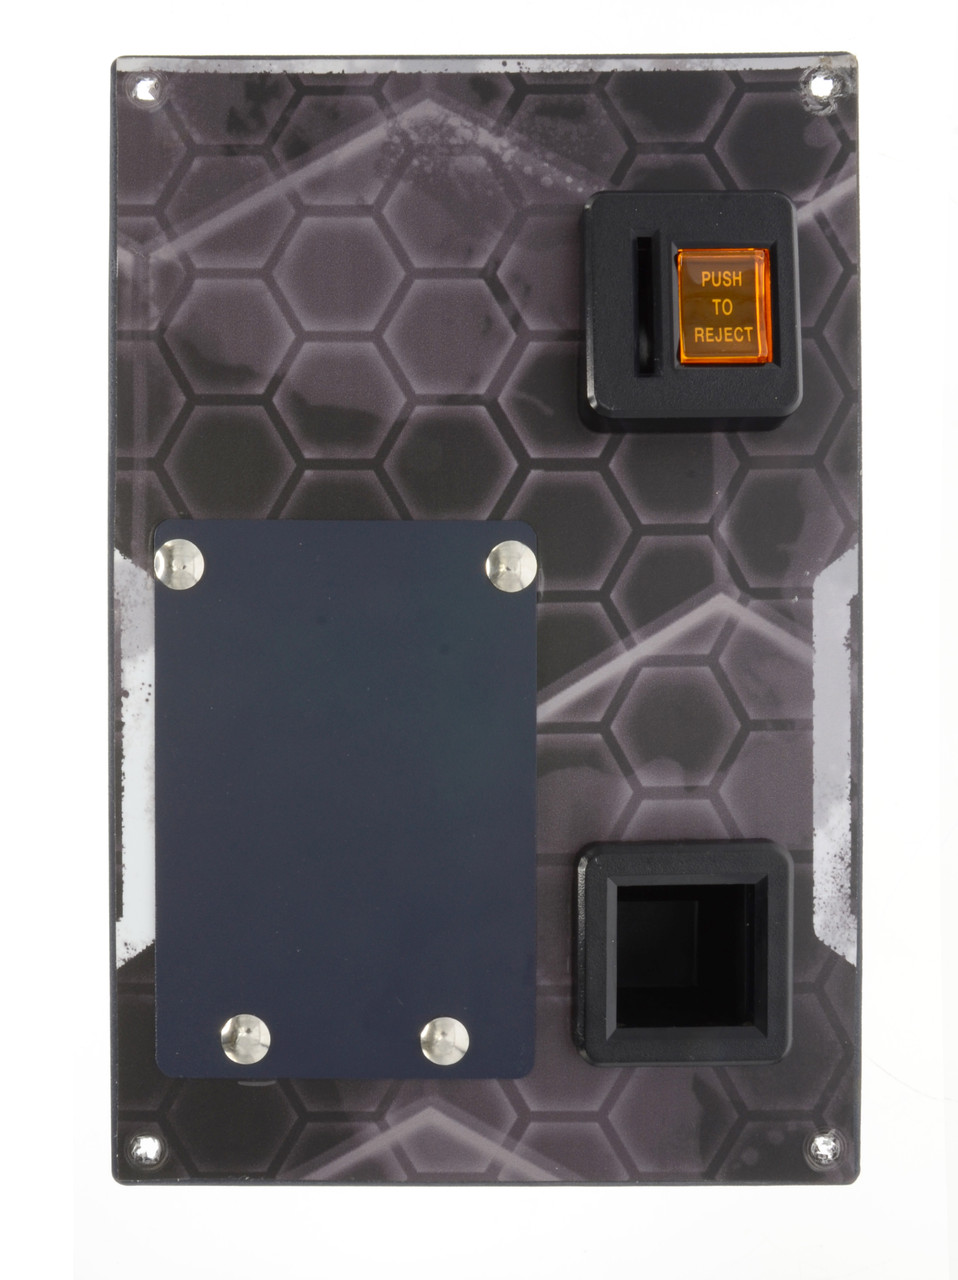 DBA/Coin Door Plate with Decal for HYPERshoot (HSH-FM-038-R0)